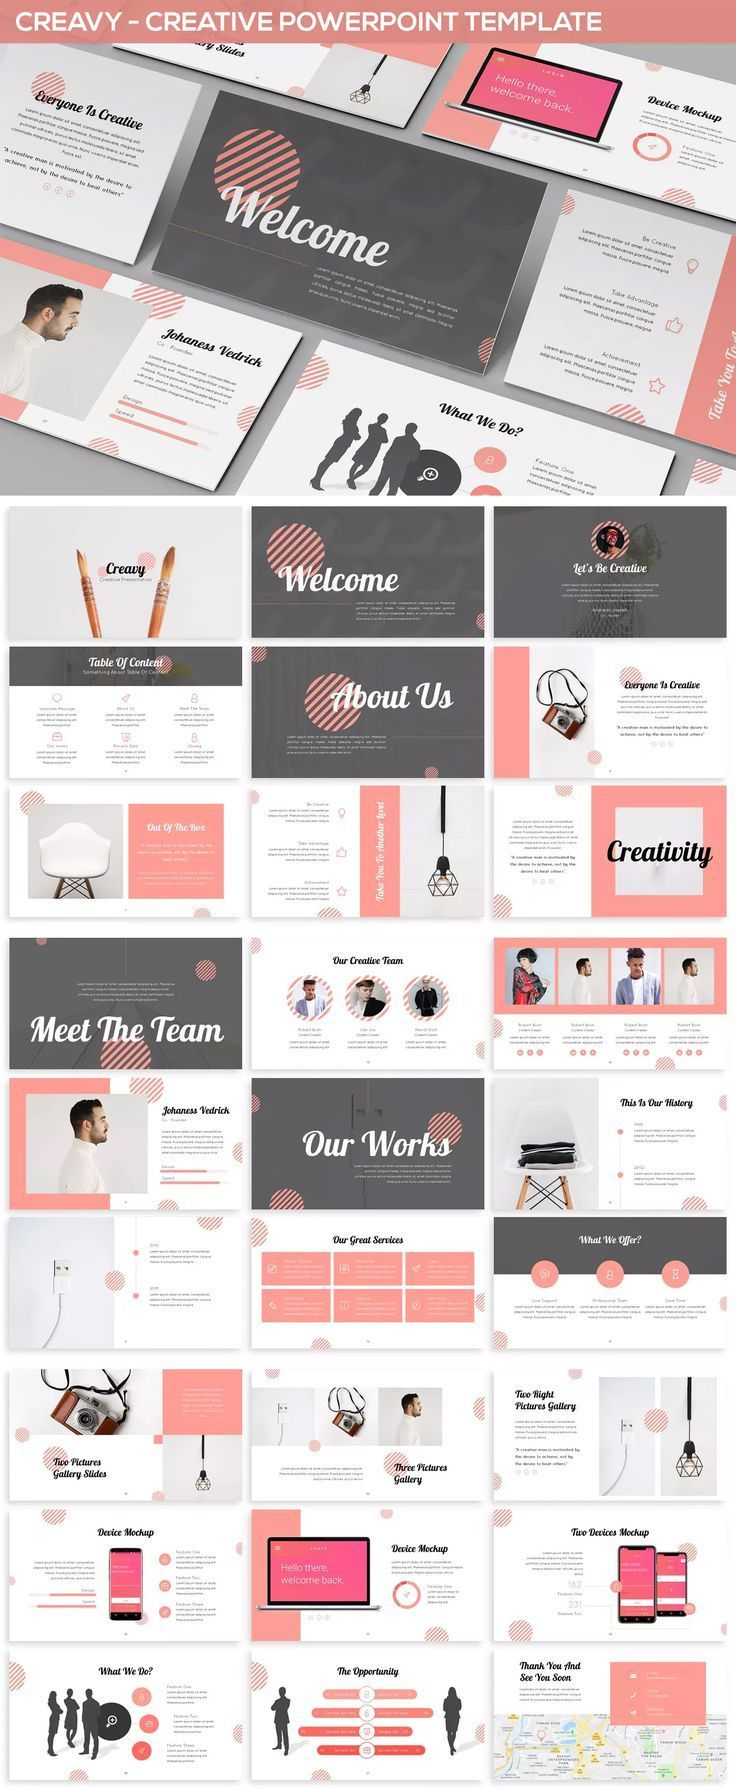 Creavy Creative Powerpoint Presentation Template 360 Total